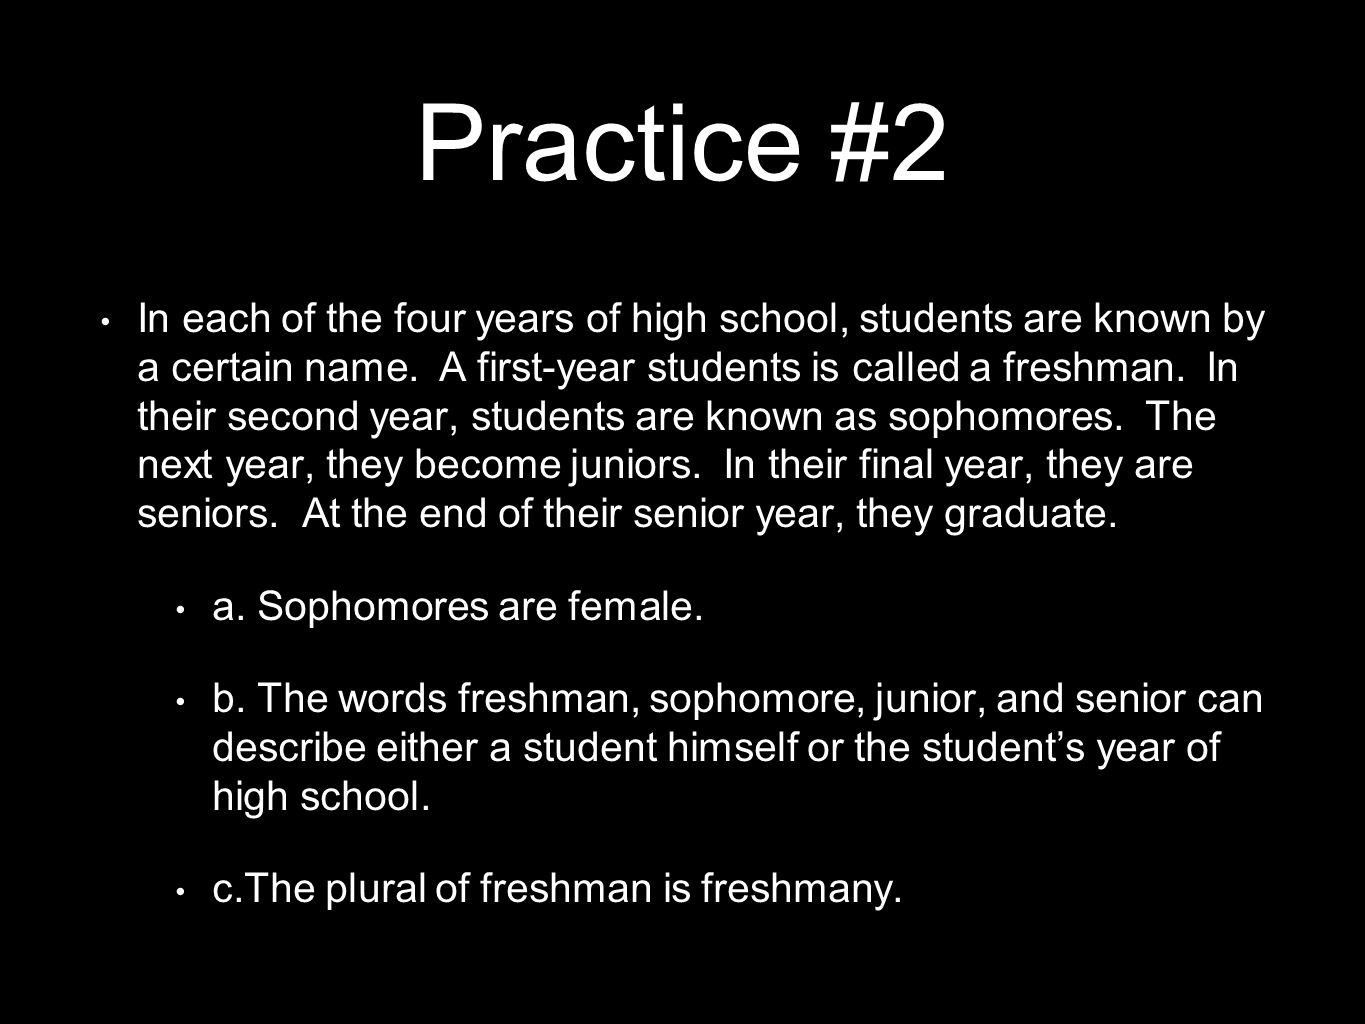 Practice #2 In each of the four years of high school, students are known by a certain name. A first-year students is called a freshman. In their secon